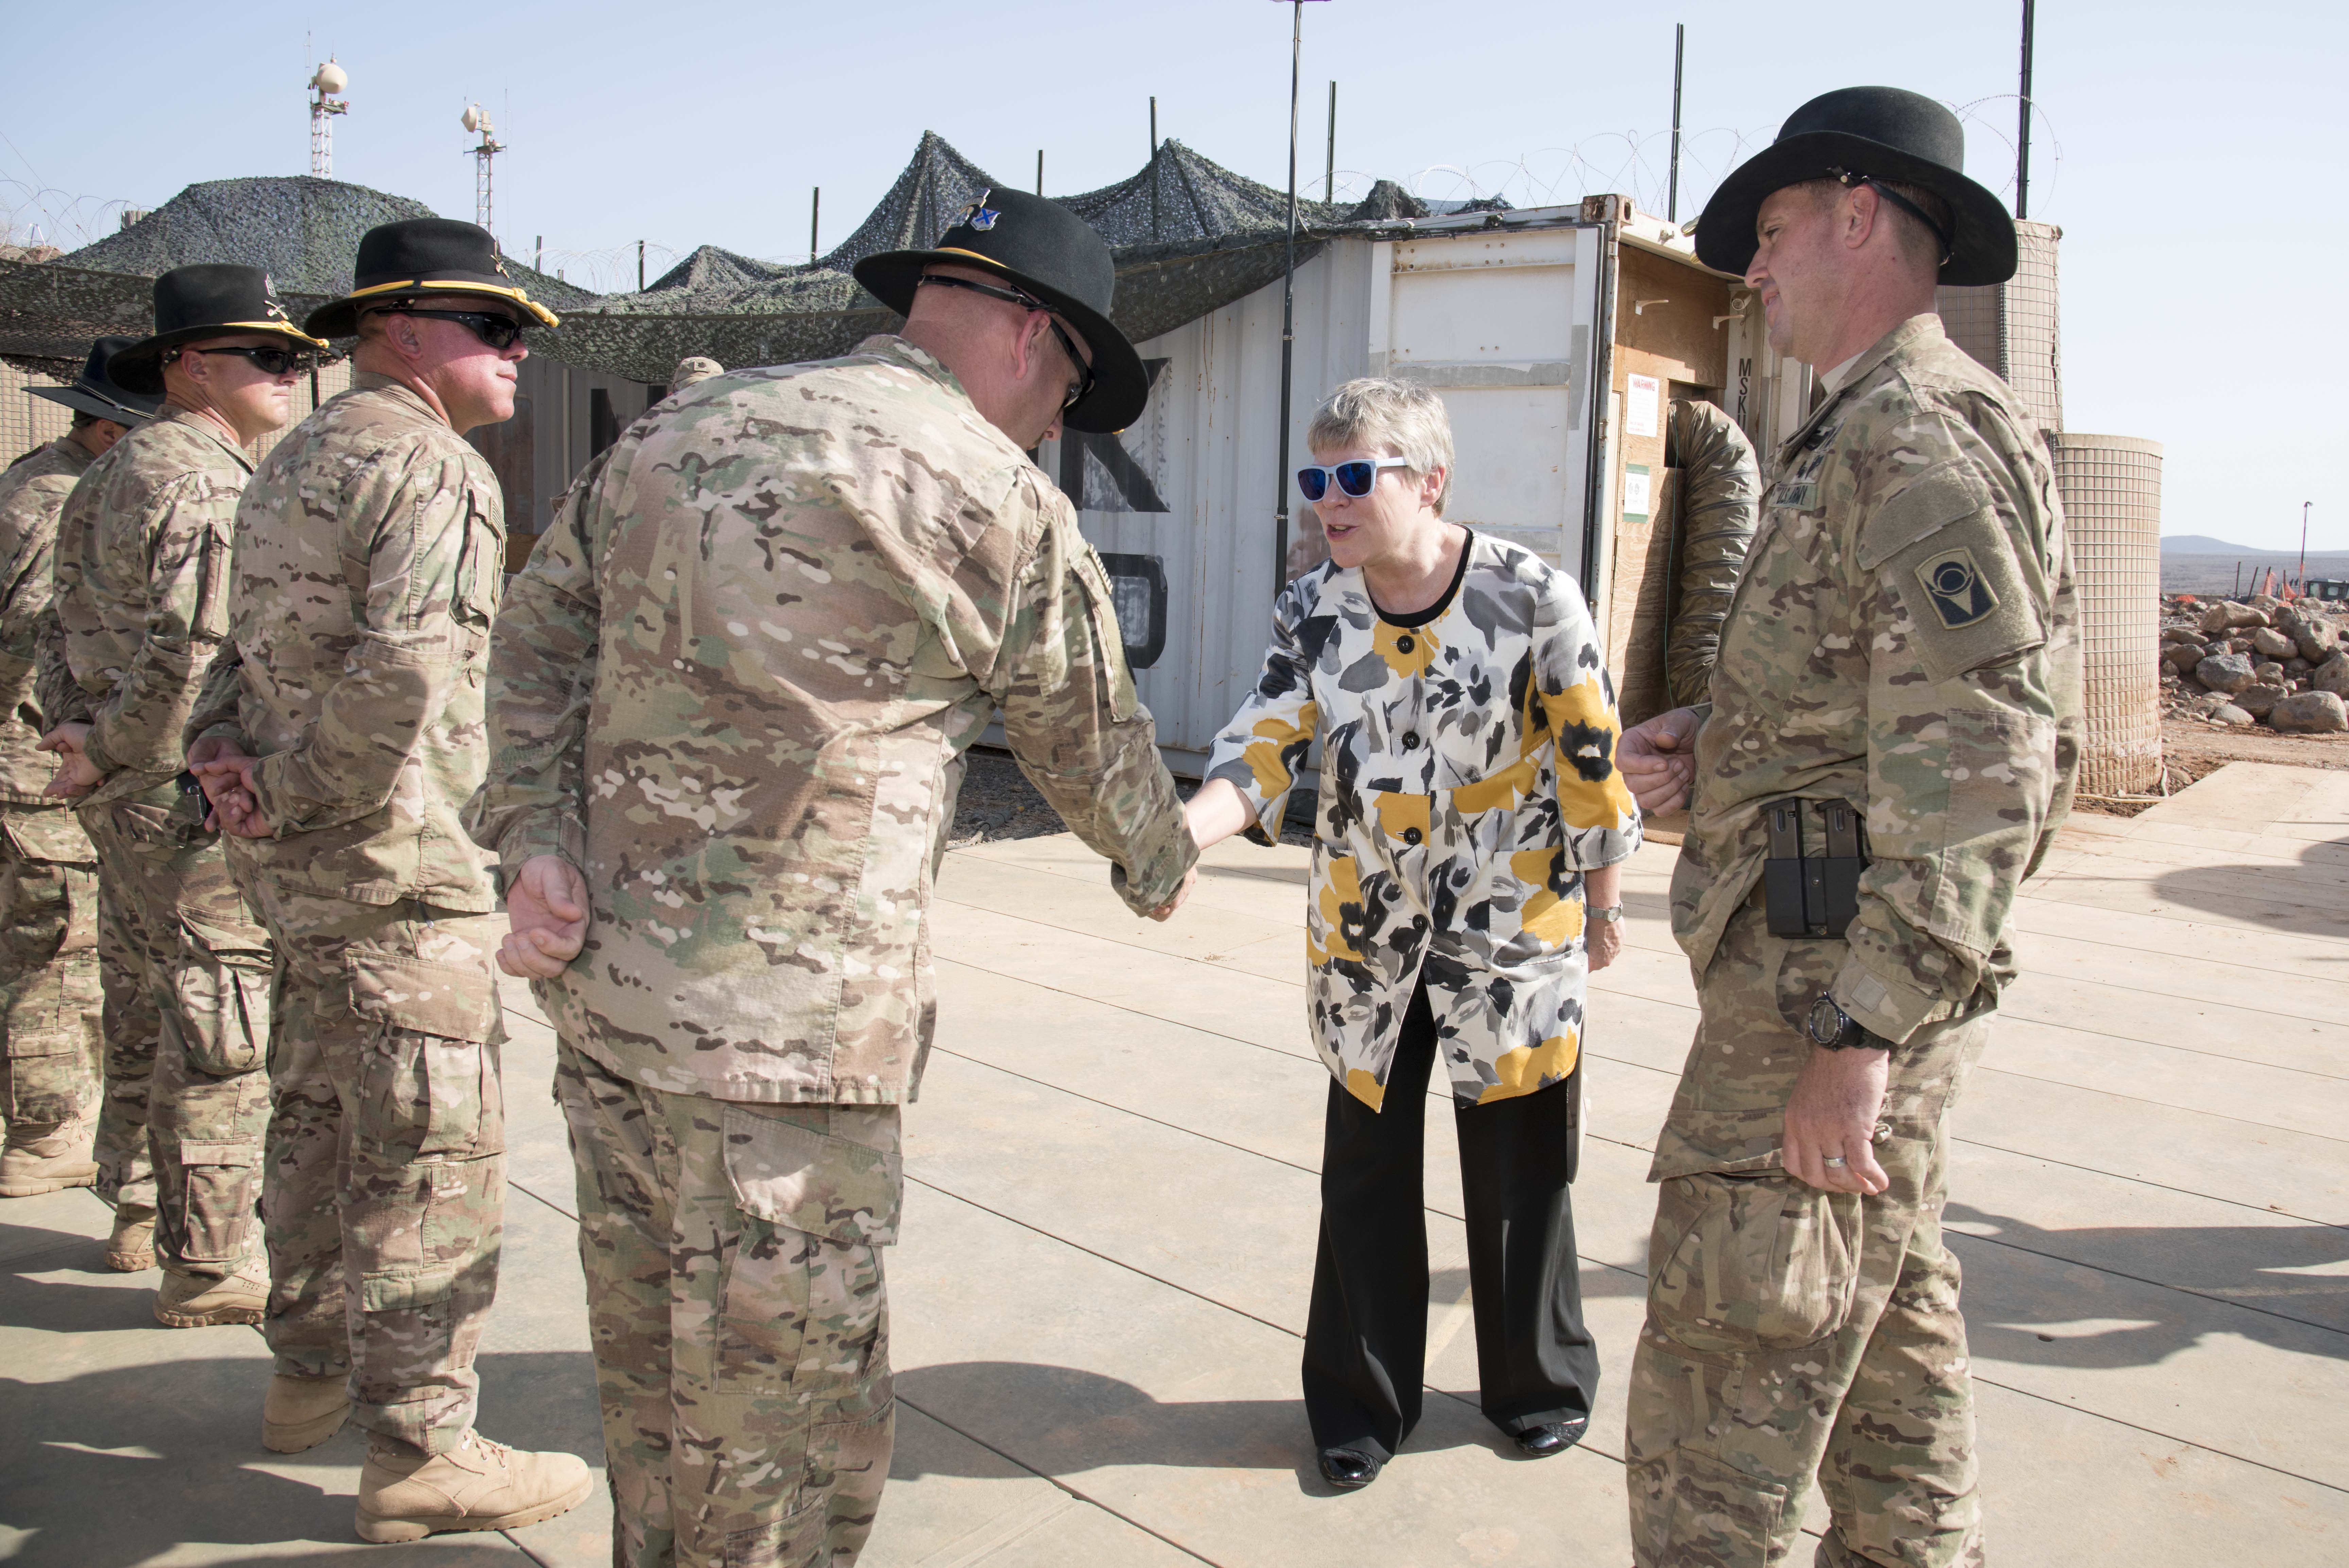 Under Secretary of State for Arms Control and International Security Rose Gottemoeller greets soldiers from Bravo Troop, 1st Squadron, 153rd Cavalry Regiment assigned to Chebelley Airfield, Djibouti, Nov. 14, 2015. Gottemoeller met with service members from Chebelley and Camp Lemonnier during her tour of Djibouti.  As Under Secretary, Gottemoeller advises the Secretary of State on arms control, nonproliferation and disarmament.